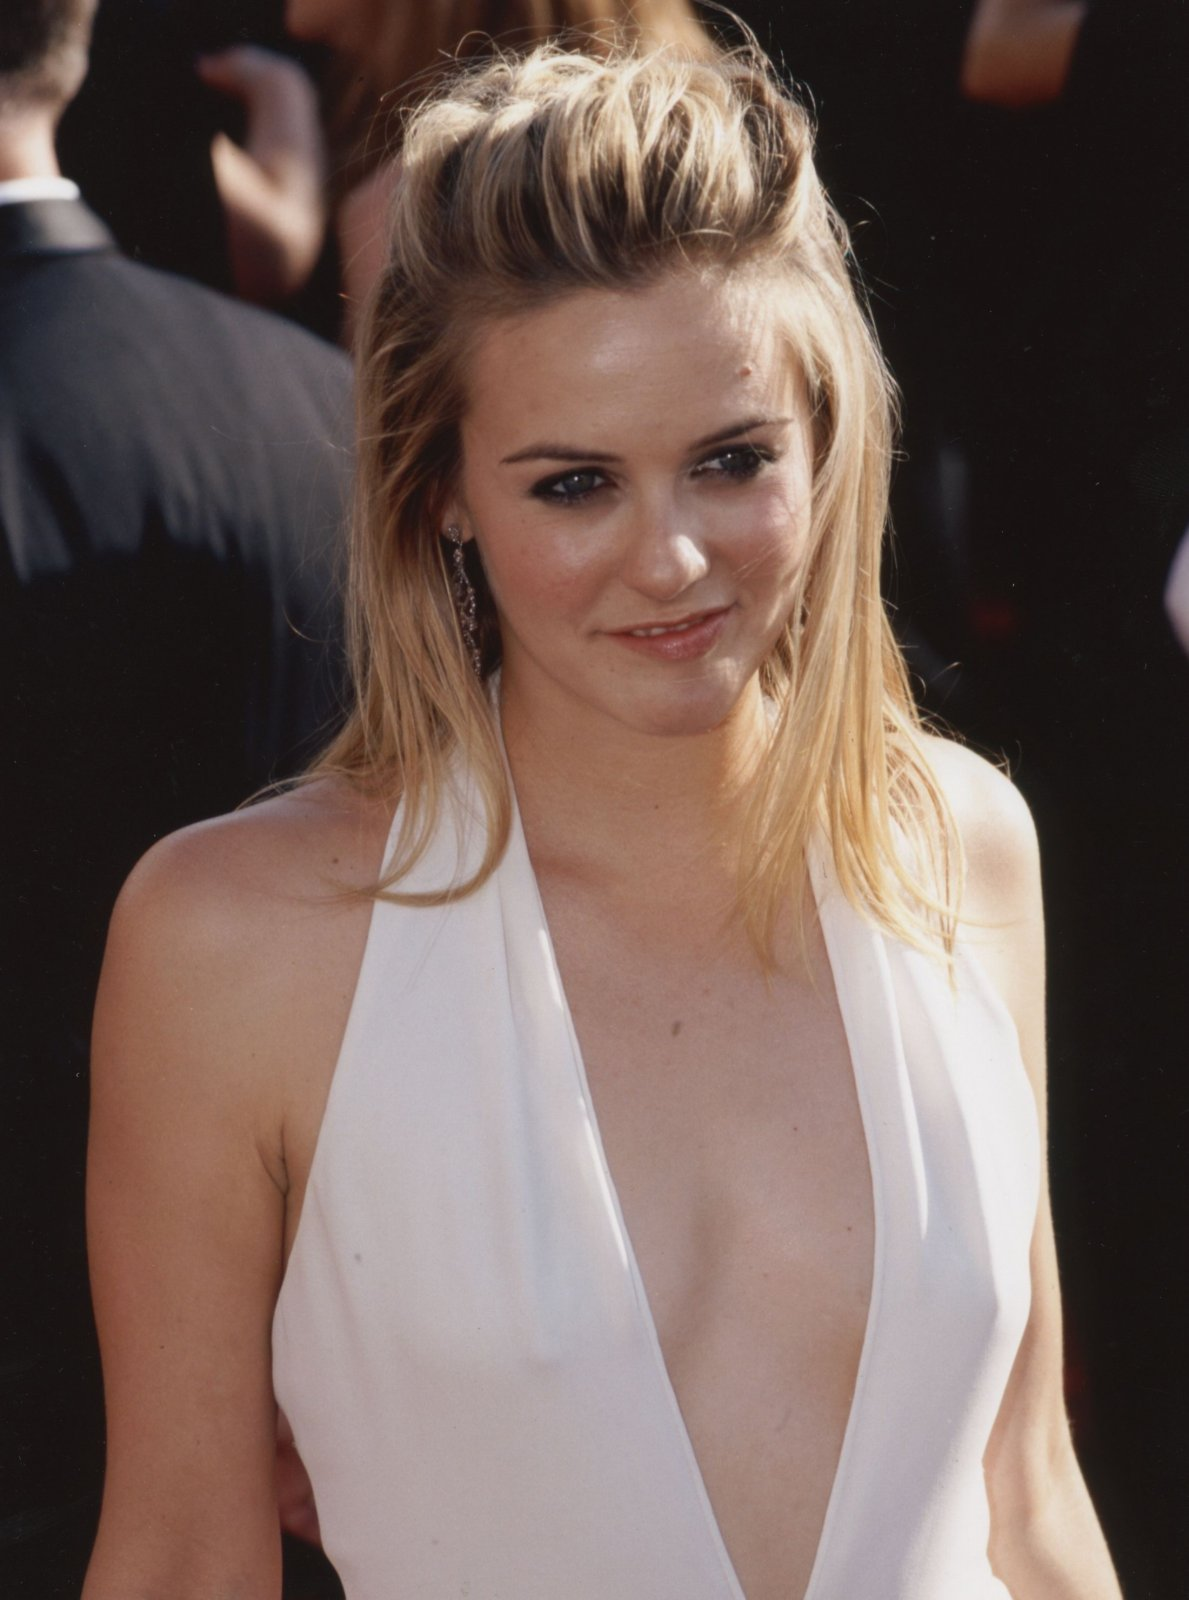 Alicia Silverstone Trending Topic